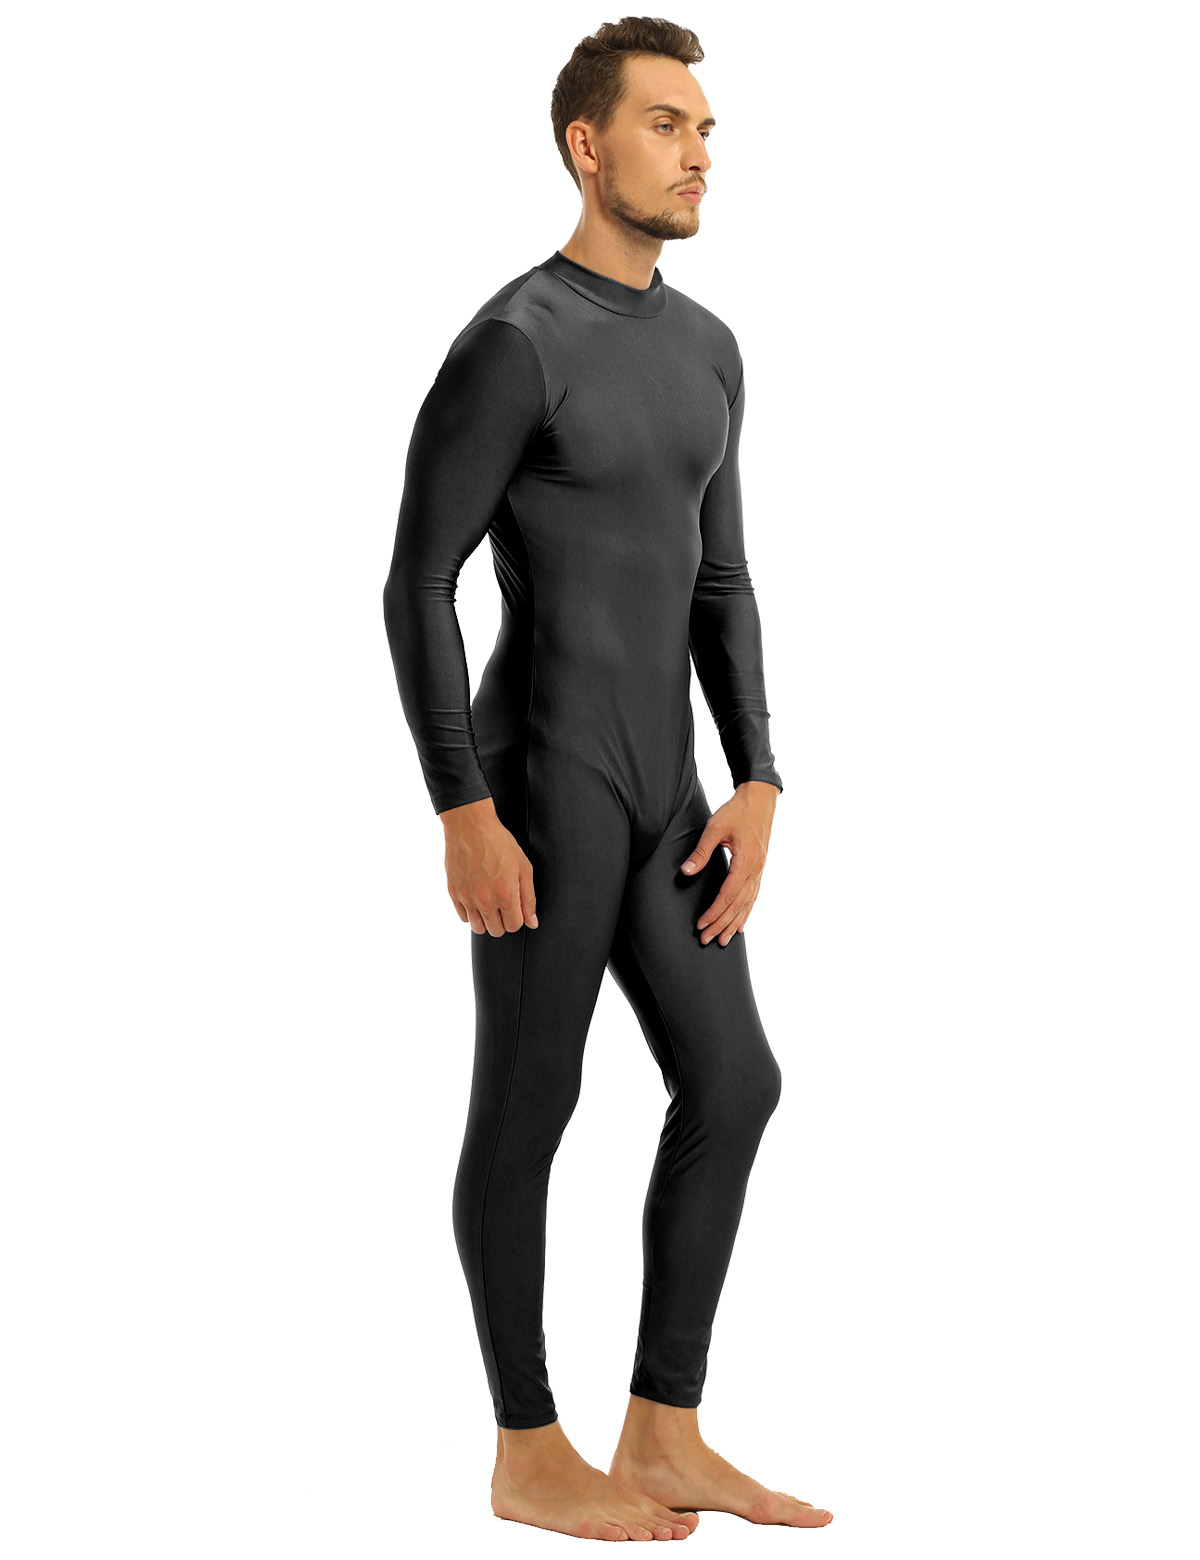 Mens Well Fit One Piece Leotards Long Sleeves Skinny Full-body Catsuit Adult Lycra Dancewear Bodysuit Gymnastics Workout Unitard 17